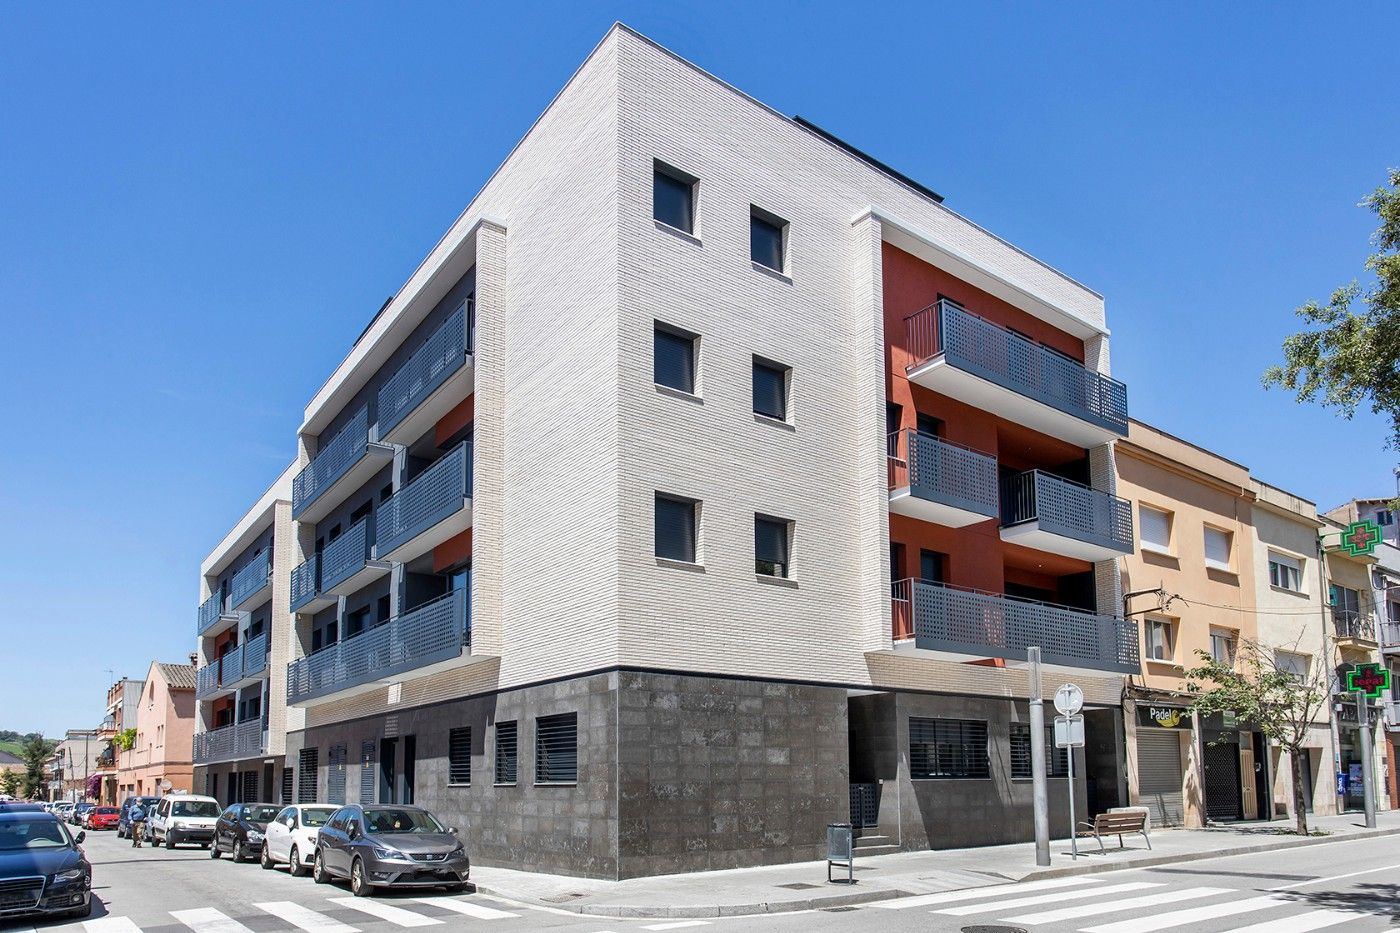 Ground floor  Carrer francesc macia. Obra nueva